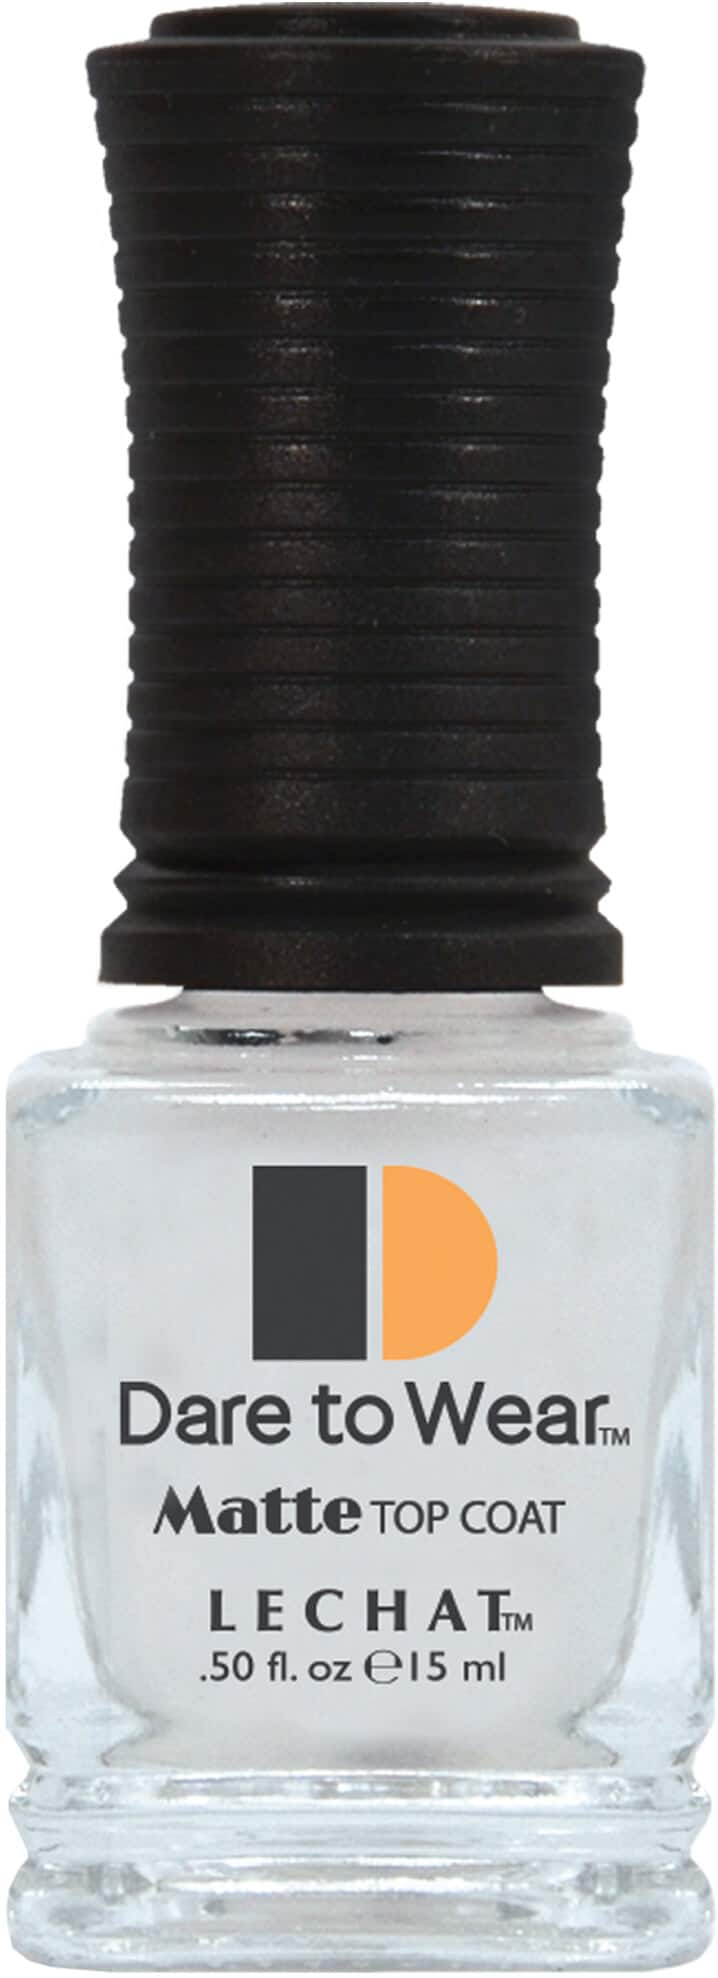 Dare to Wear - Matte Top Coat | LeChat Nails